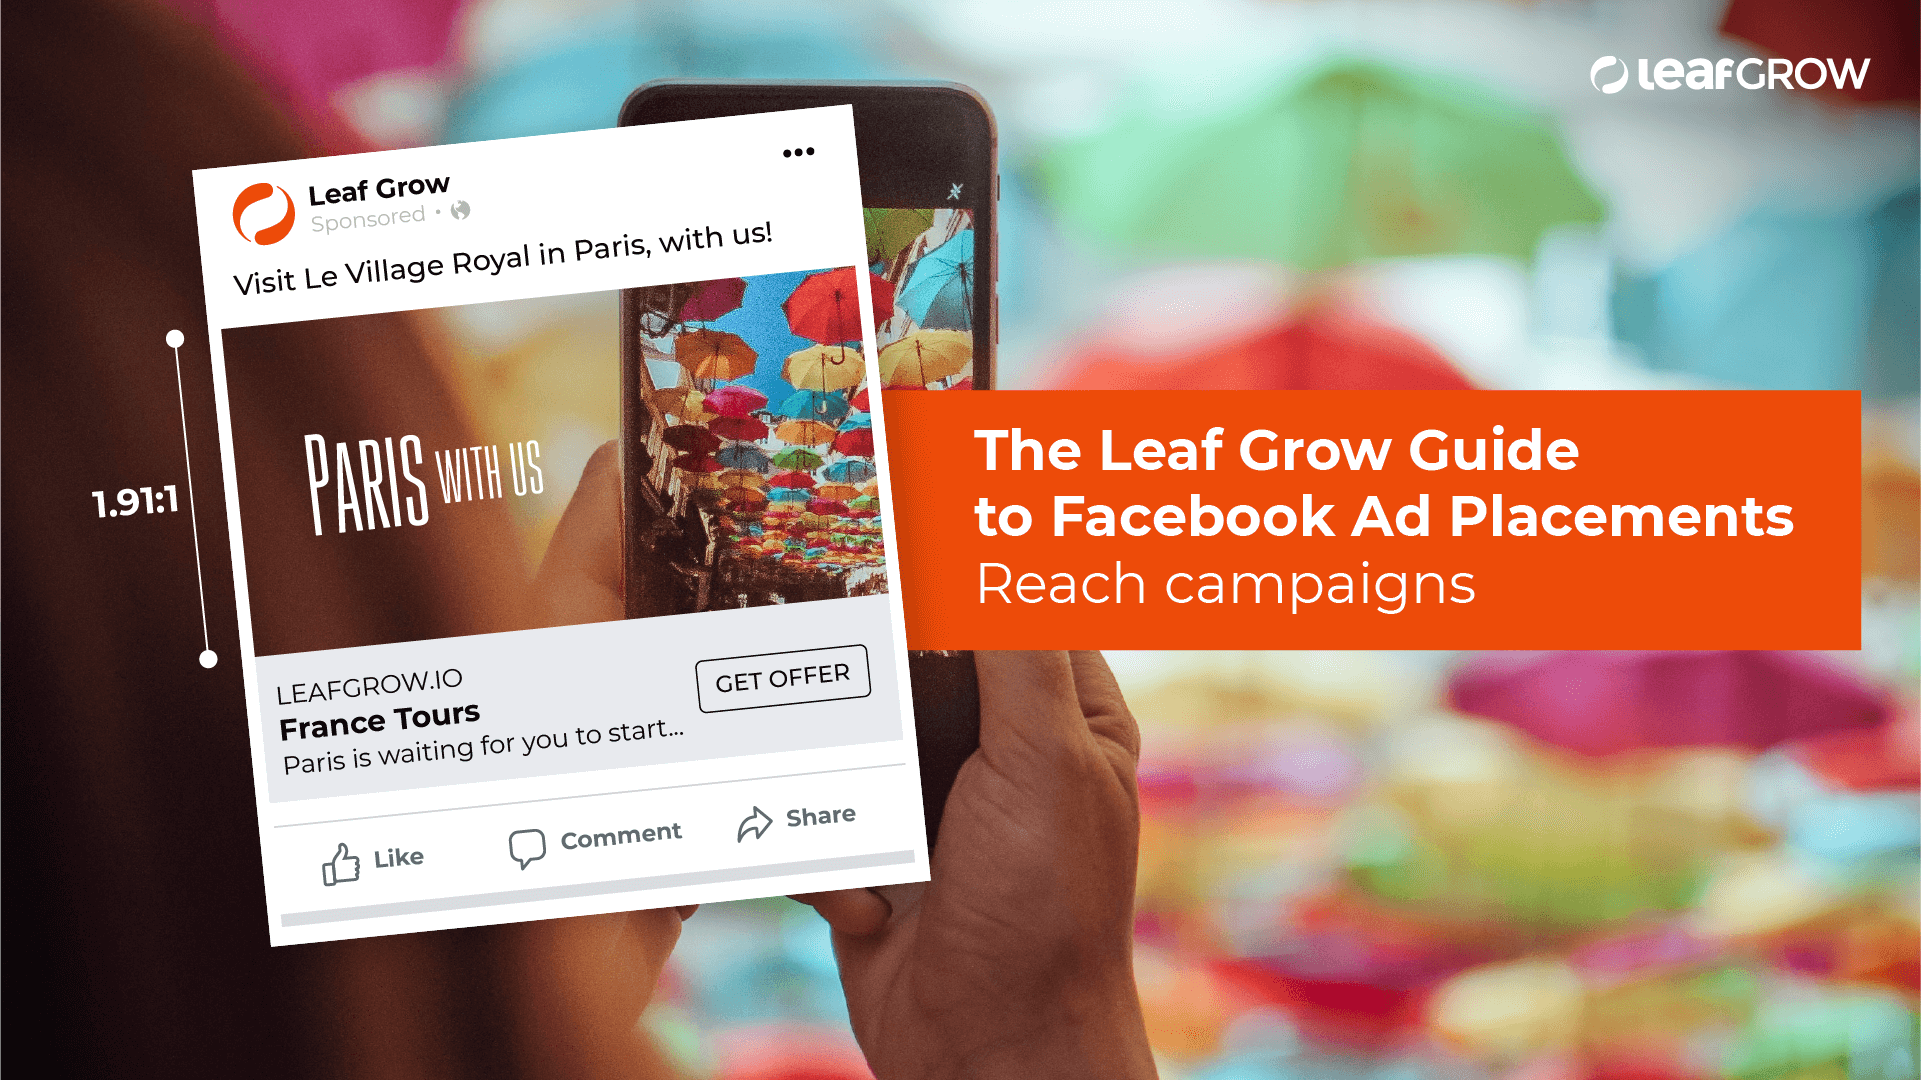 The Leaf Grow Guide to Facebook Ad Placements - Reach campaigns-01.png